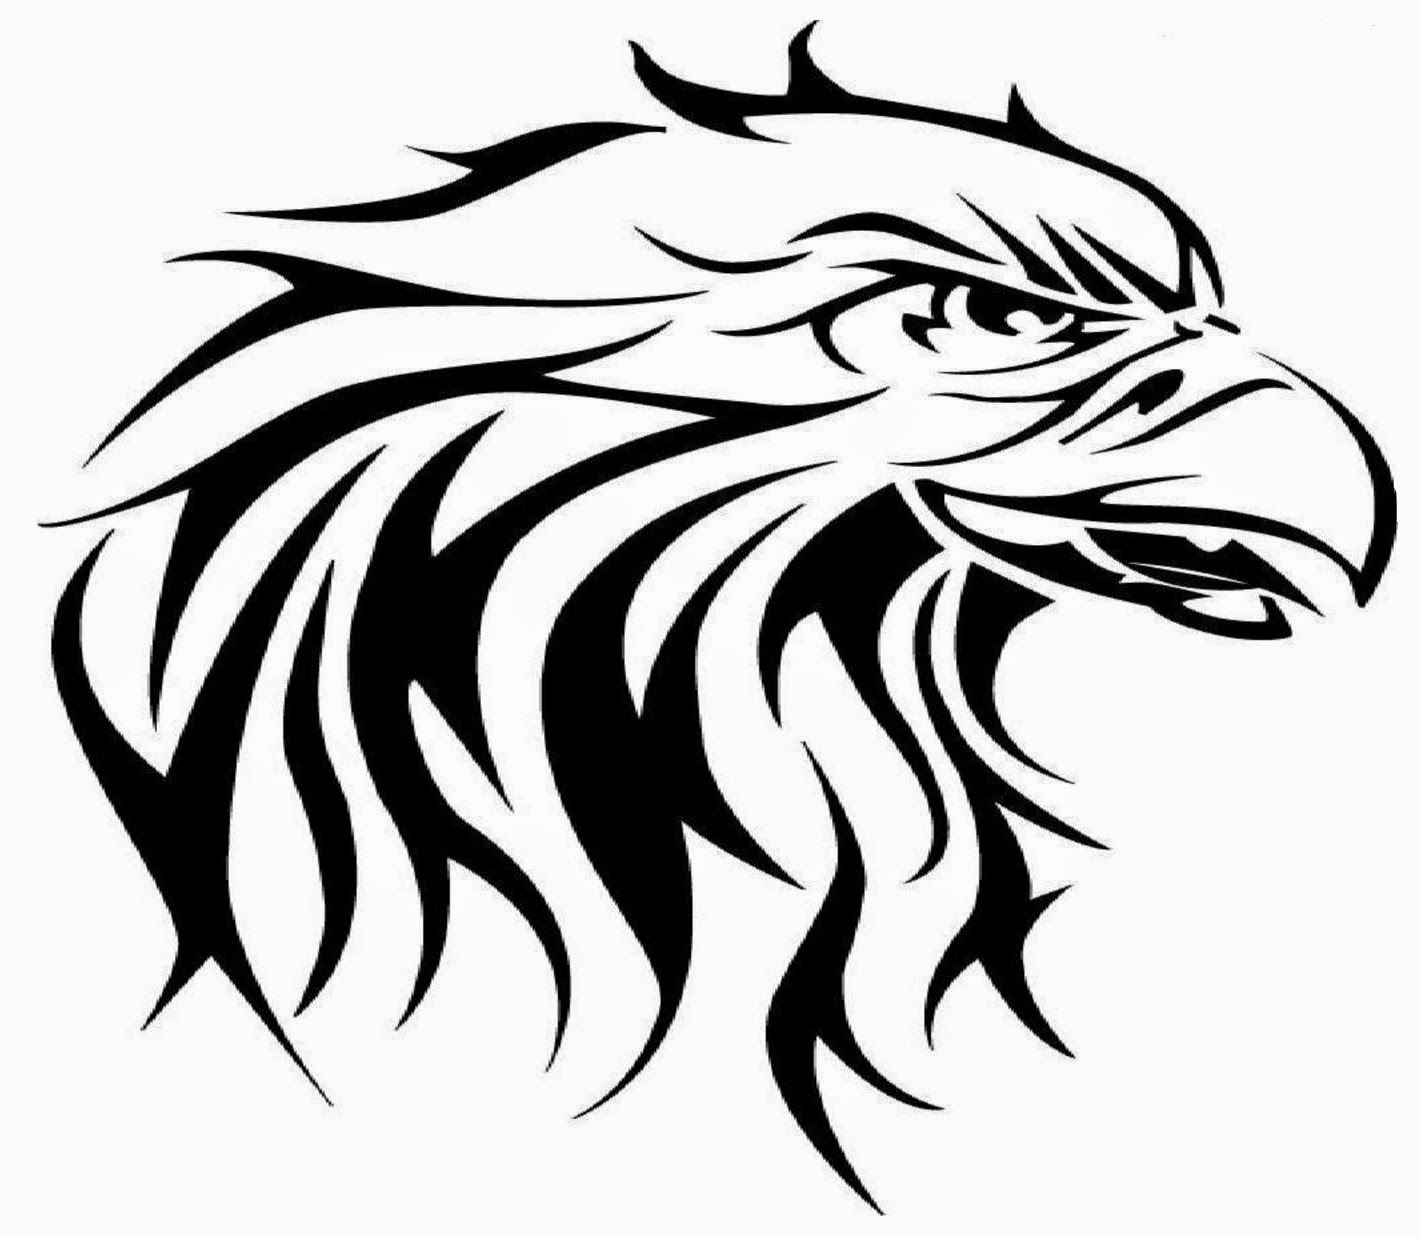 Eagle head tribal tattoo stencil